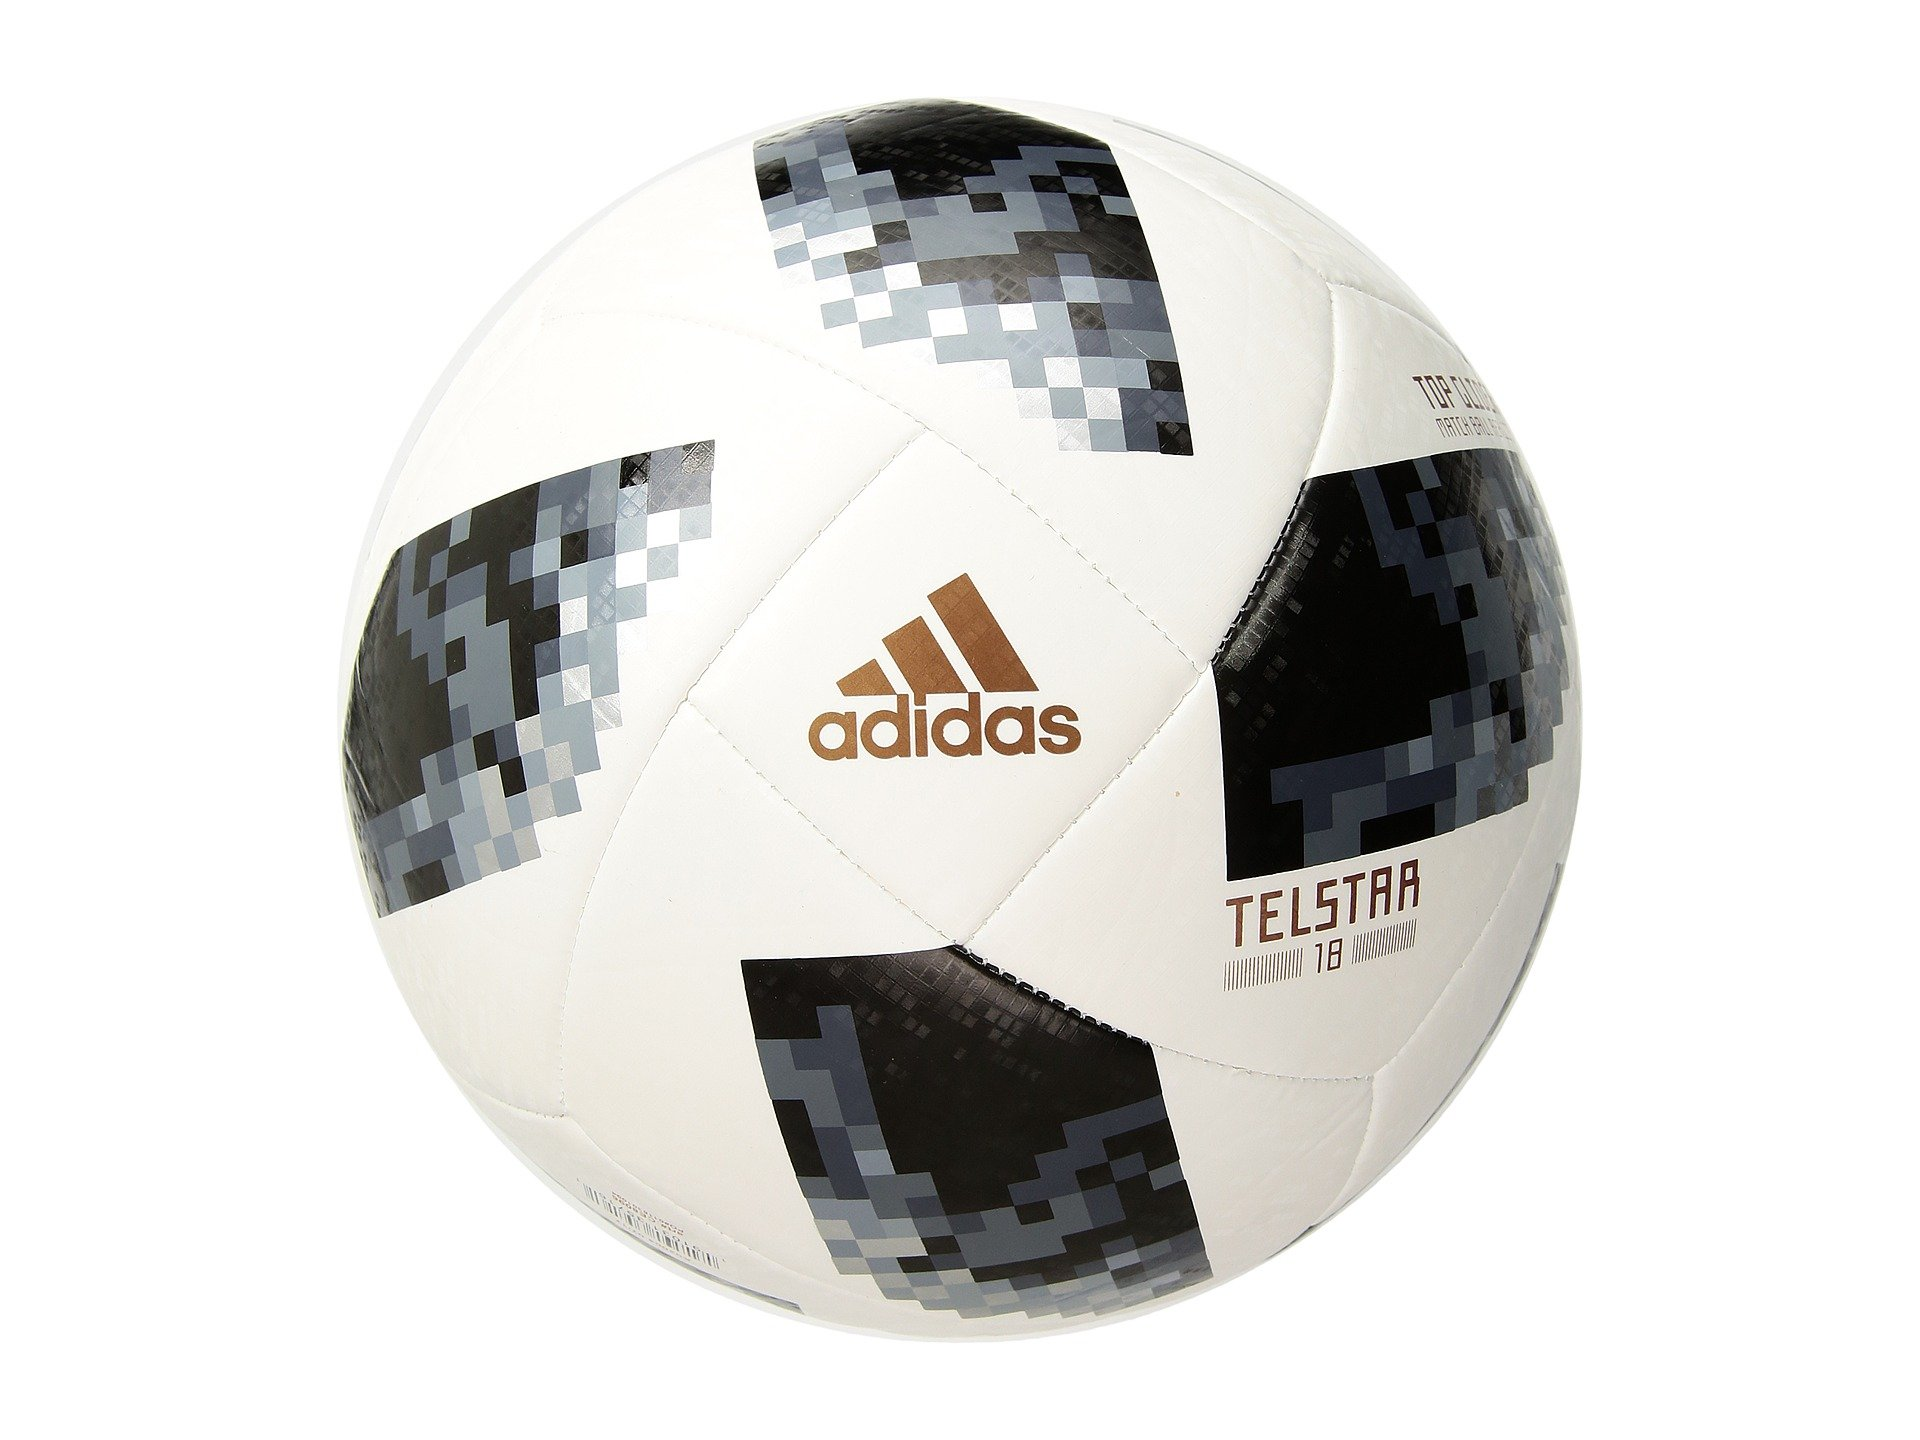 adidas FIFA World Cup Glider Ball White Black Silver Metallic d4a8ee9363003